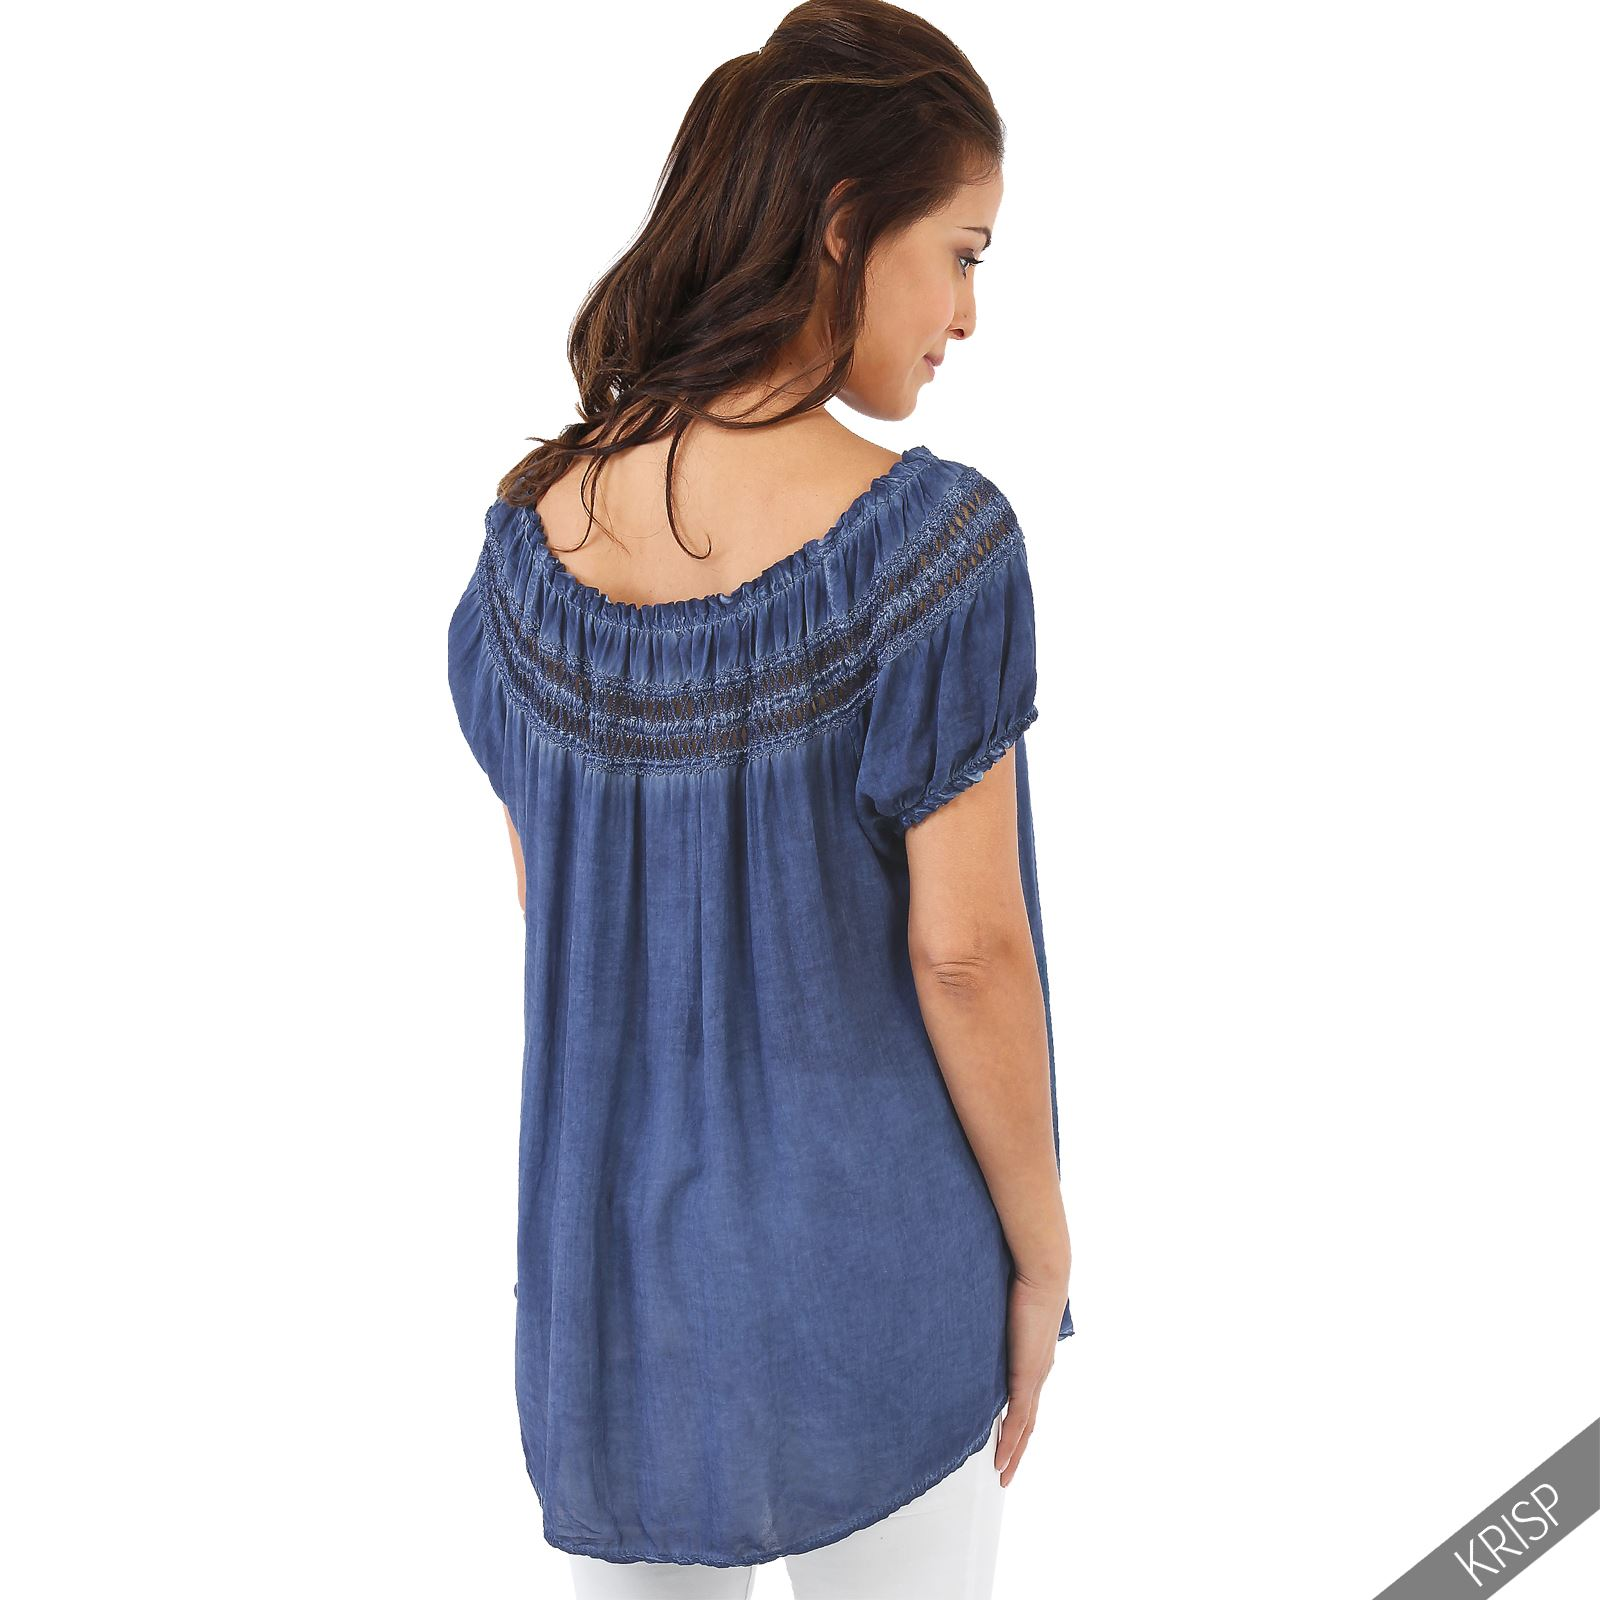 Overstock uses cookies to ensure you get the best experience on our site. Summer Women Zipper Front Deep V Neck Ladies Fashion Casual Tops Sexy Zipper Blouse -Three Quarter Sleeve Chiffon Loose Tank Top. Women's Tunic Top Set - Heavenly Lace 2 .